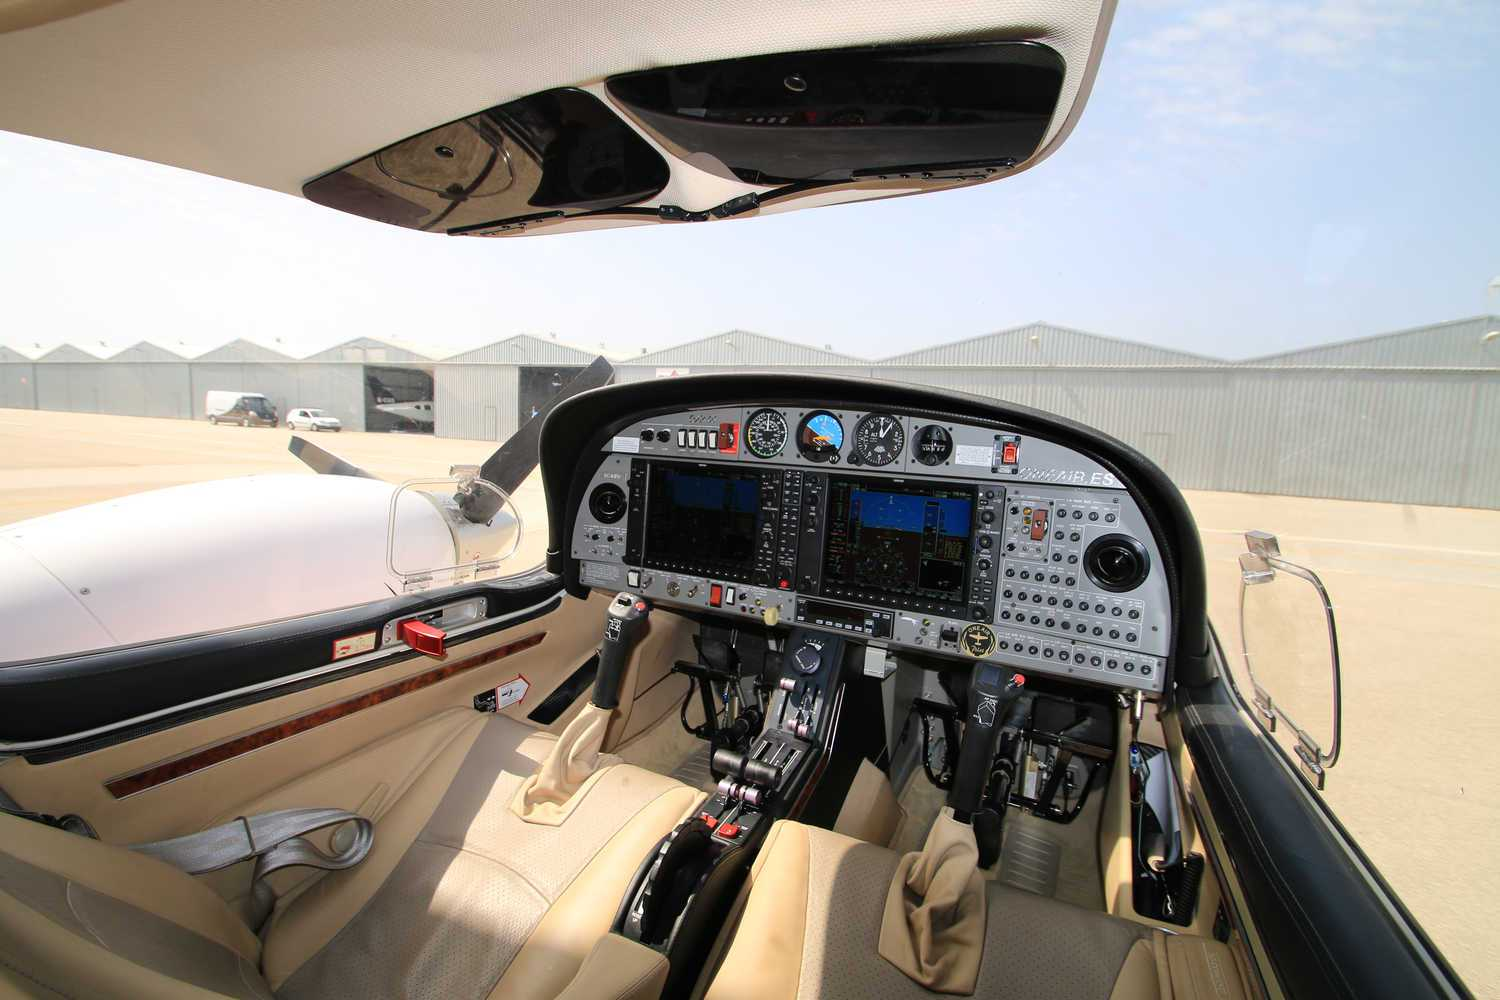 inside view of a one airs diamond da42 at velez aerodrome